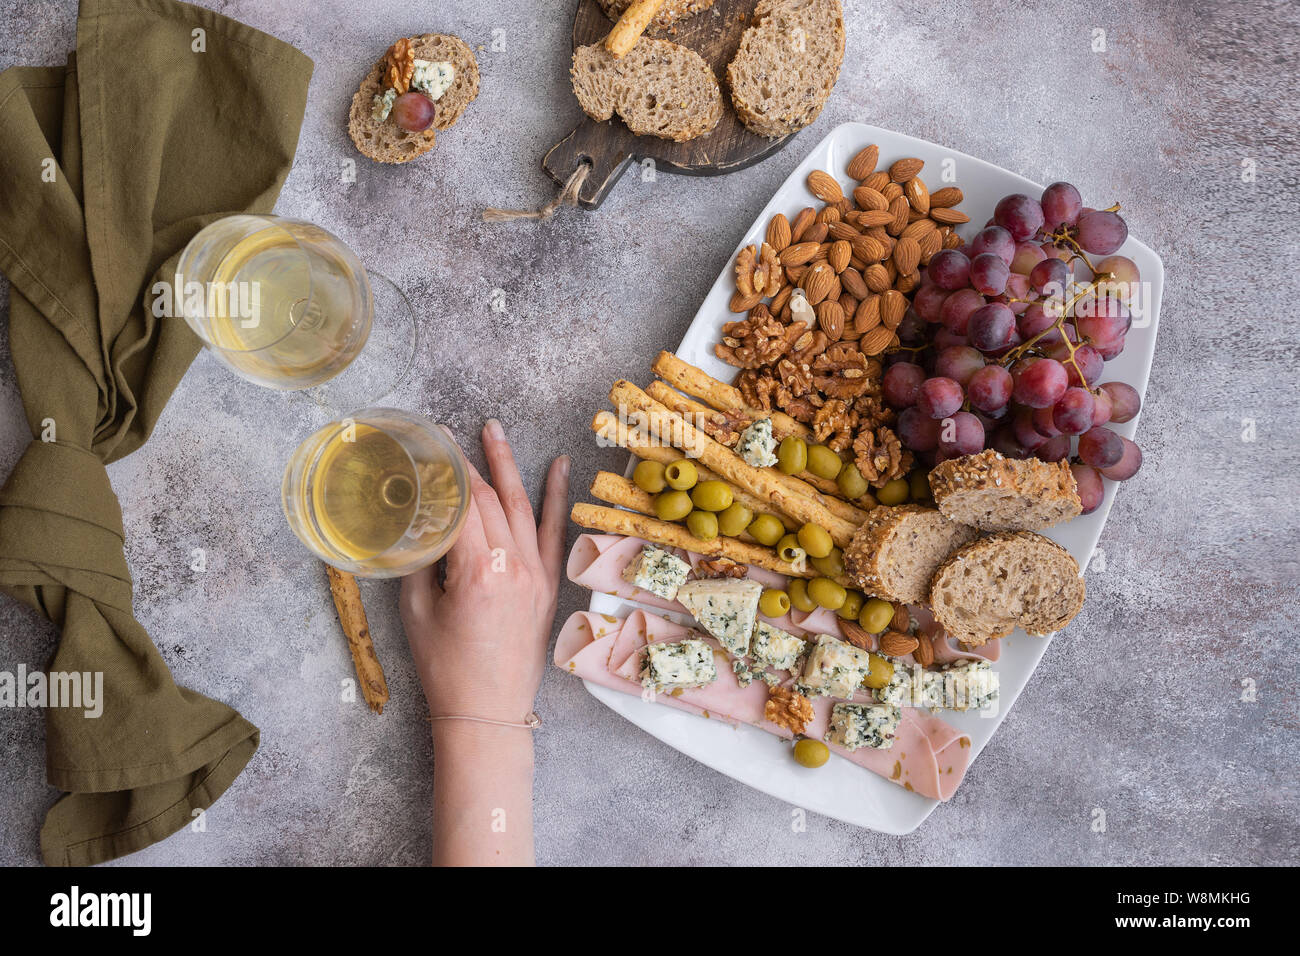 Two Glasses Of White Wine And Plate With Different Snacks Female Hand Holding Glass Of Wine Tasting Party Background Top View Stock Photo Alamy